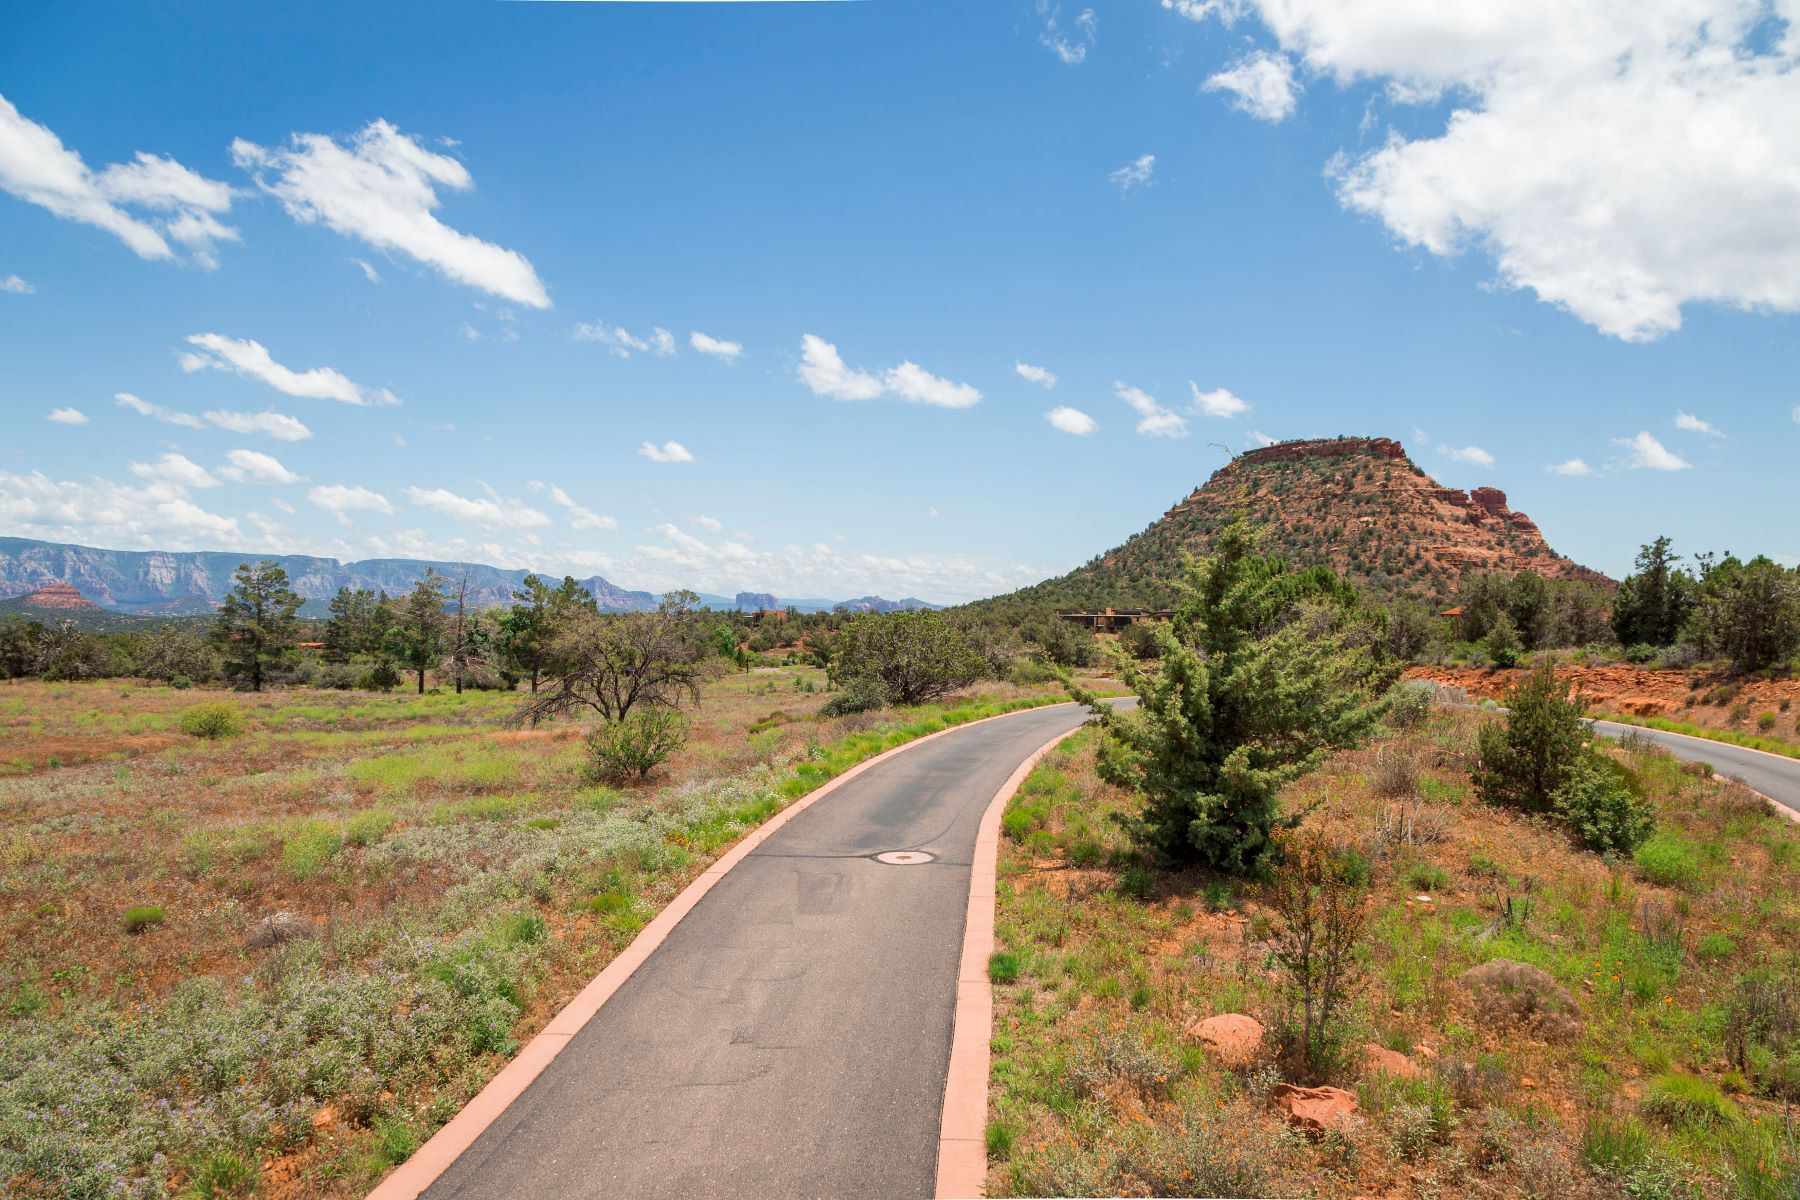 Land for Sale at Expansive Sedona Views 335 Aerie Rd Sedona, Arizona, 86336 United States